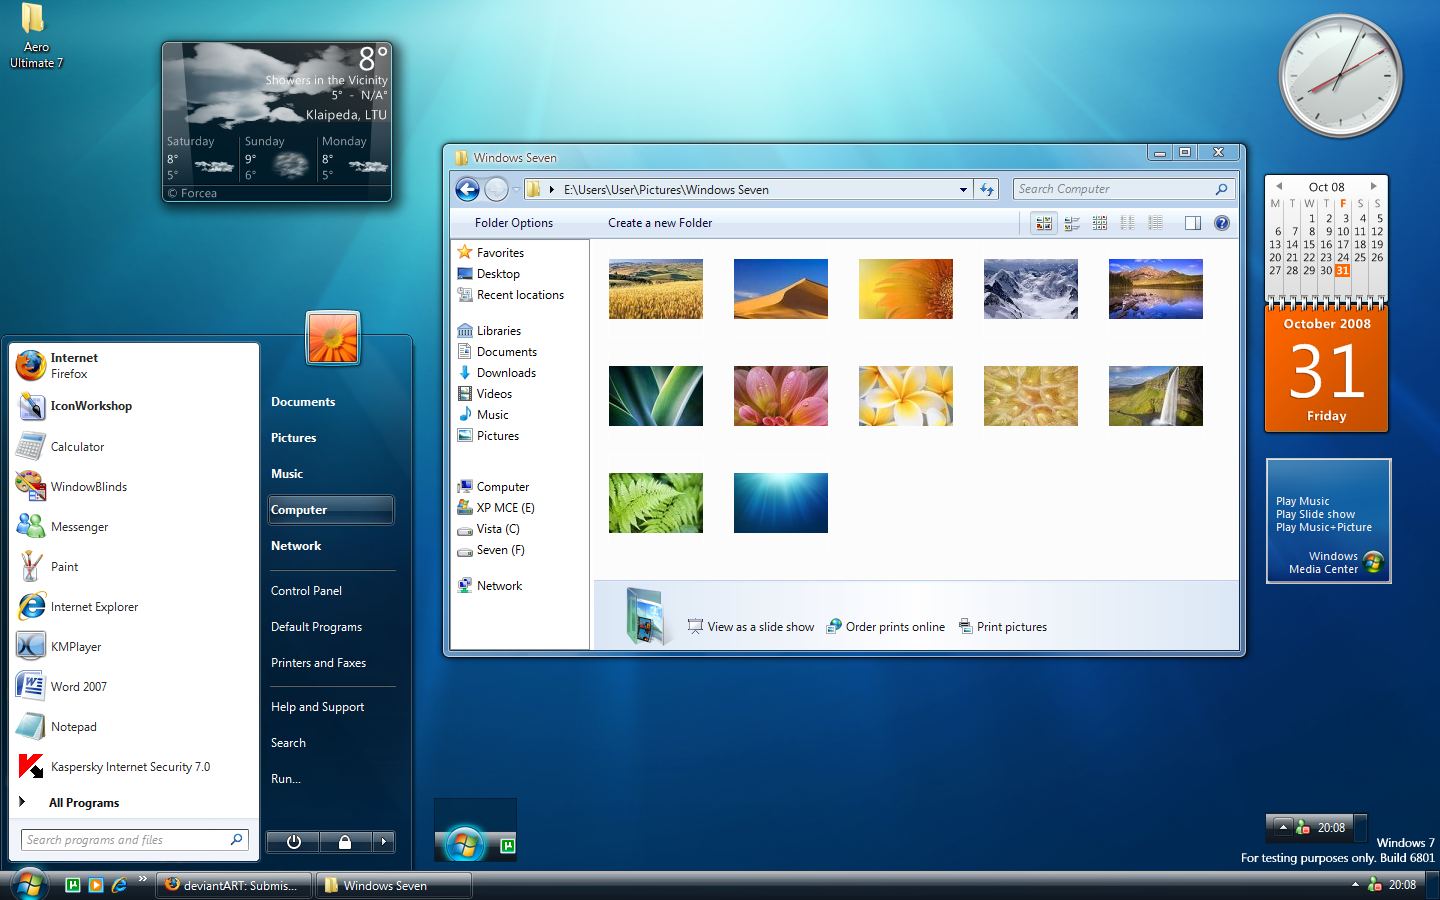 windows 7 home premium lite